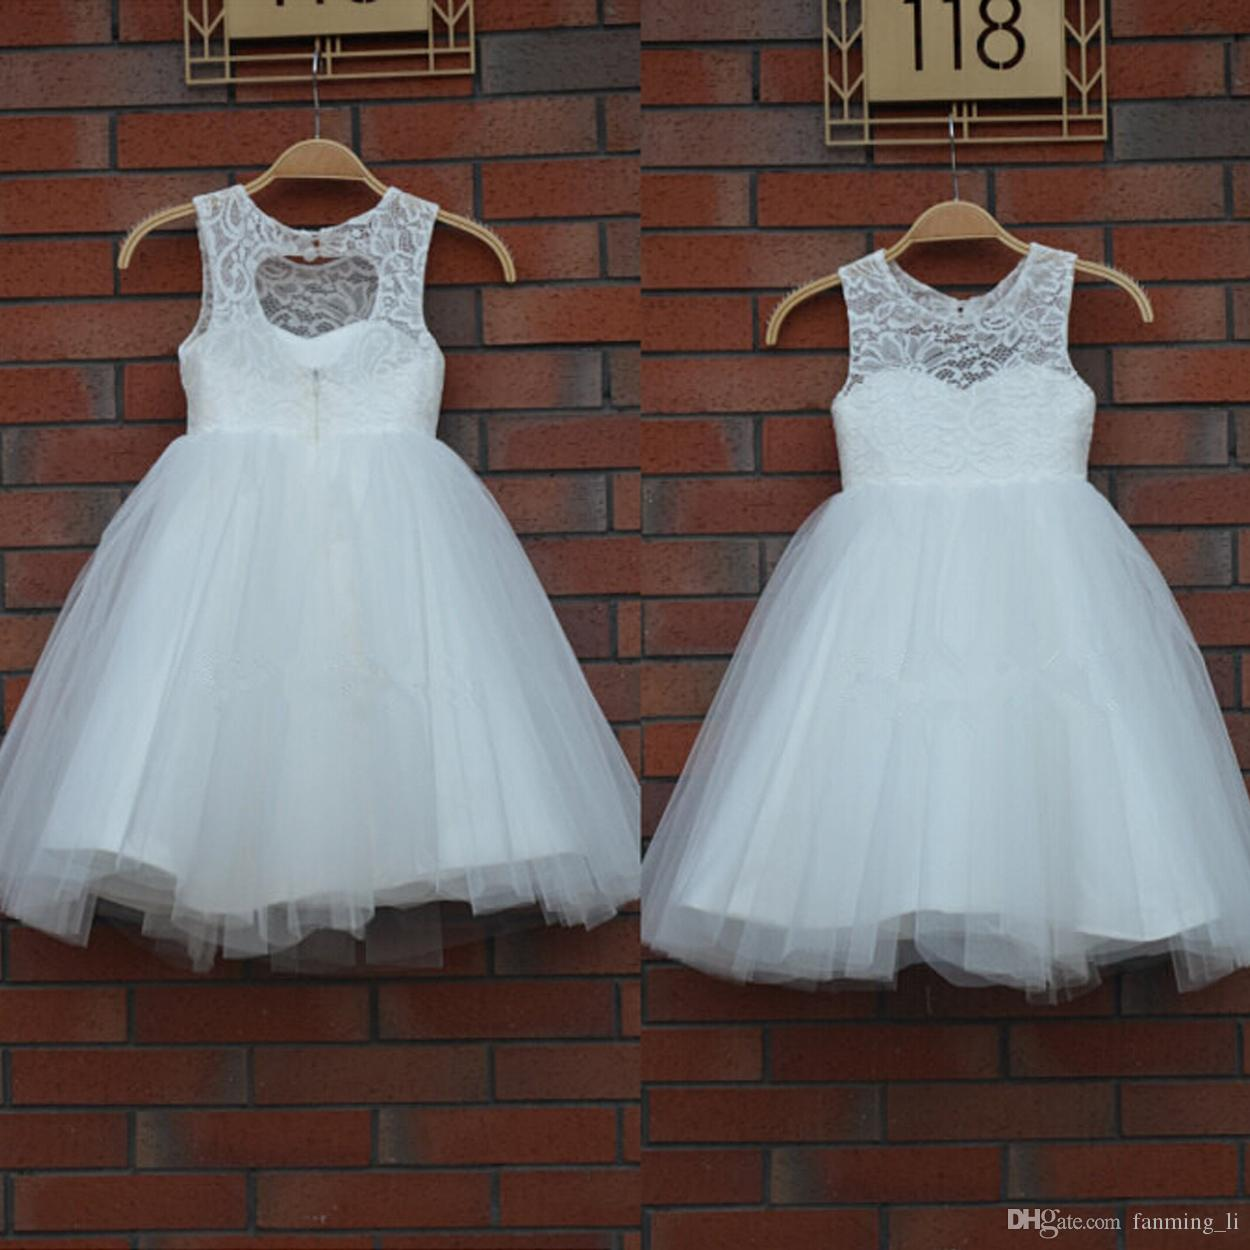 New Arrival Real Flower Girl Dresses Keyhole Communion Party Pageant ...